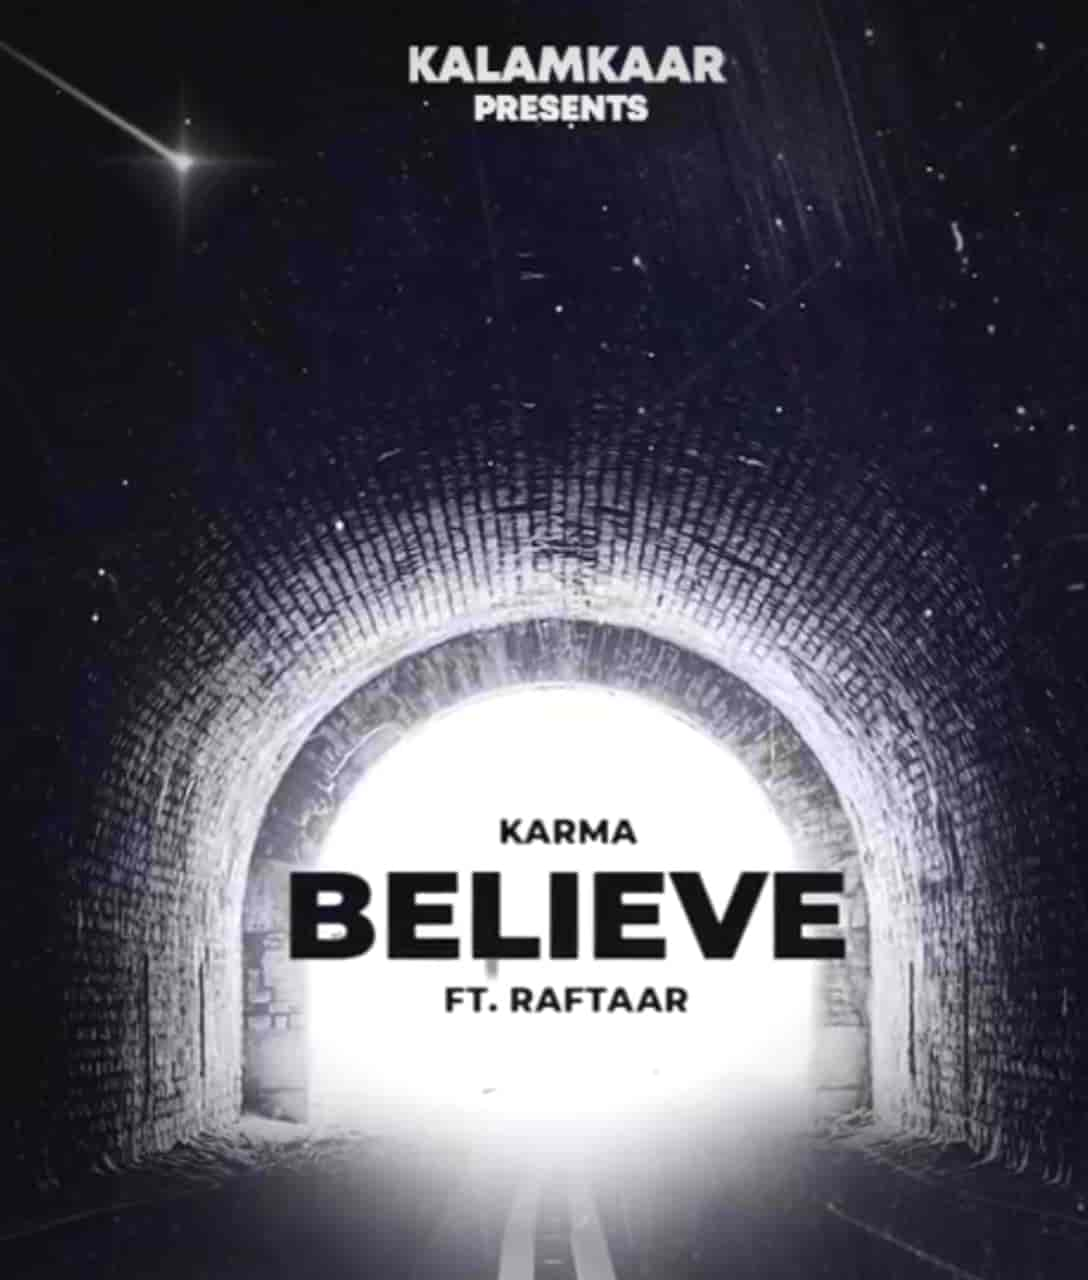 Jo Tu Chahega (Believe) Rap Song Image Features Karma And Raftaar